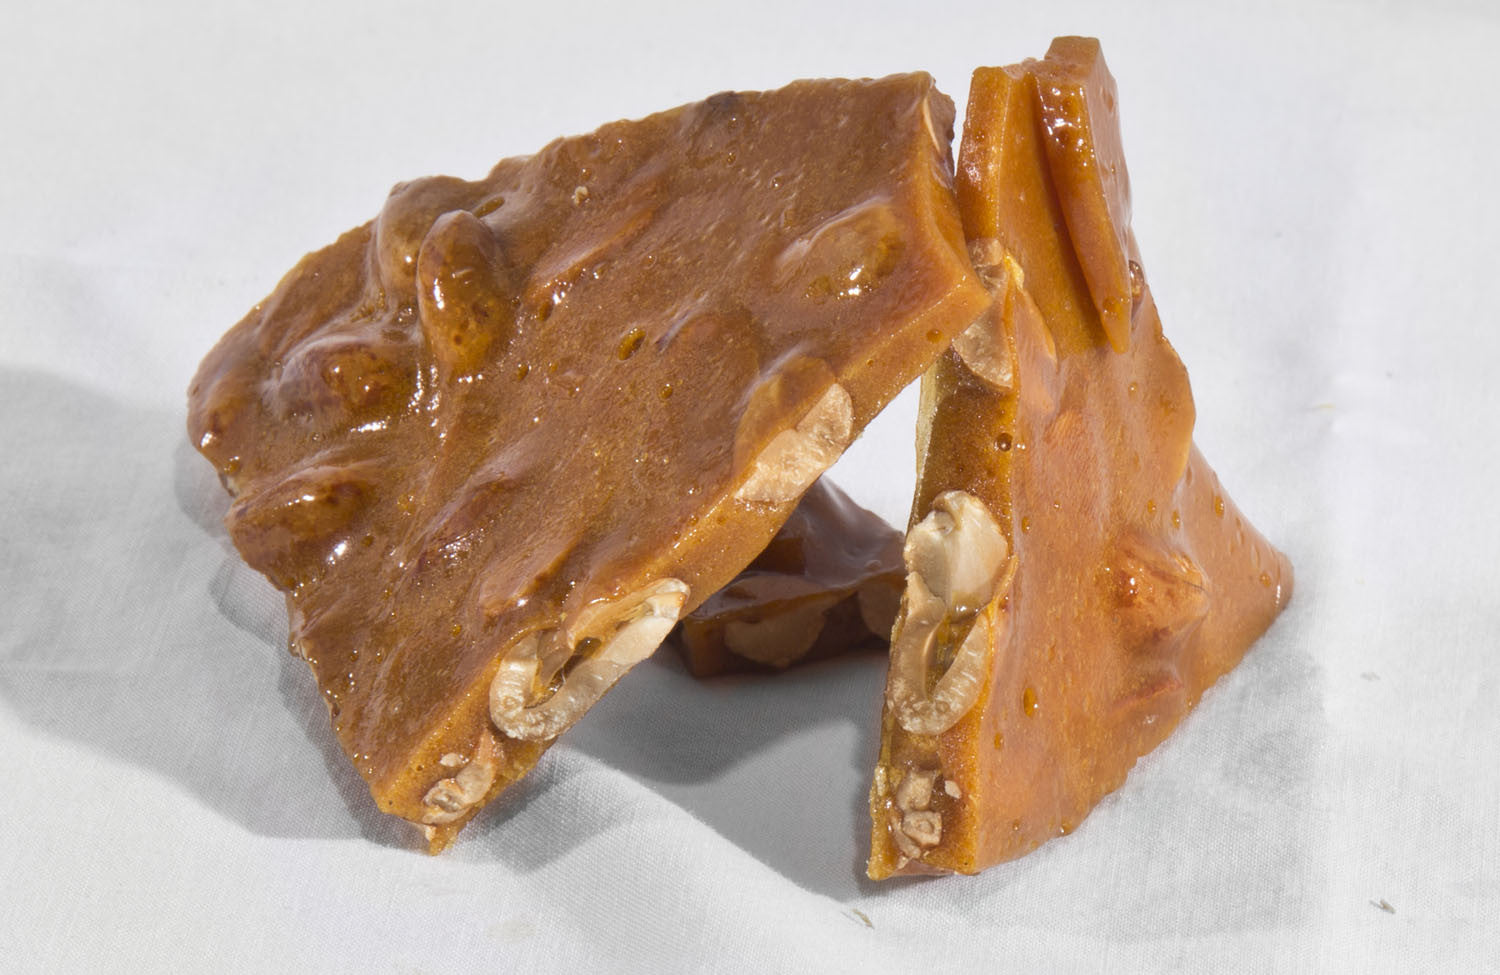 Peanut Brittle (60 mg)